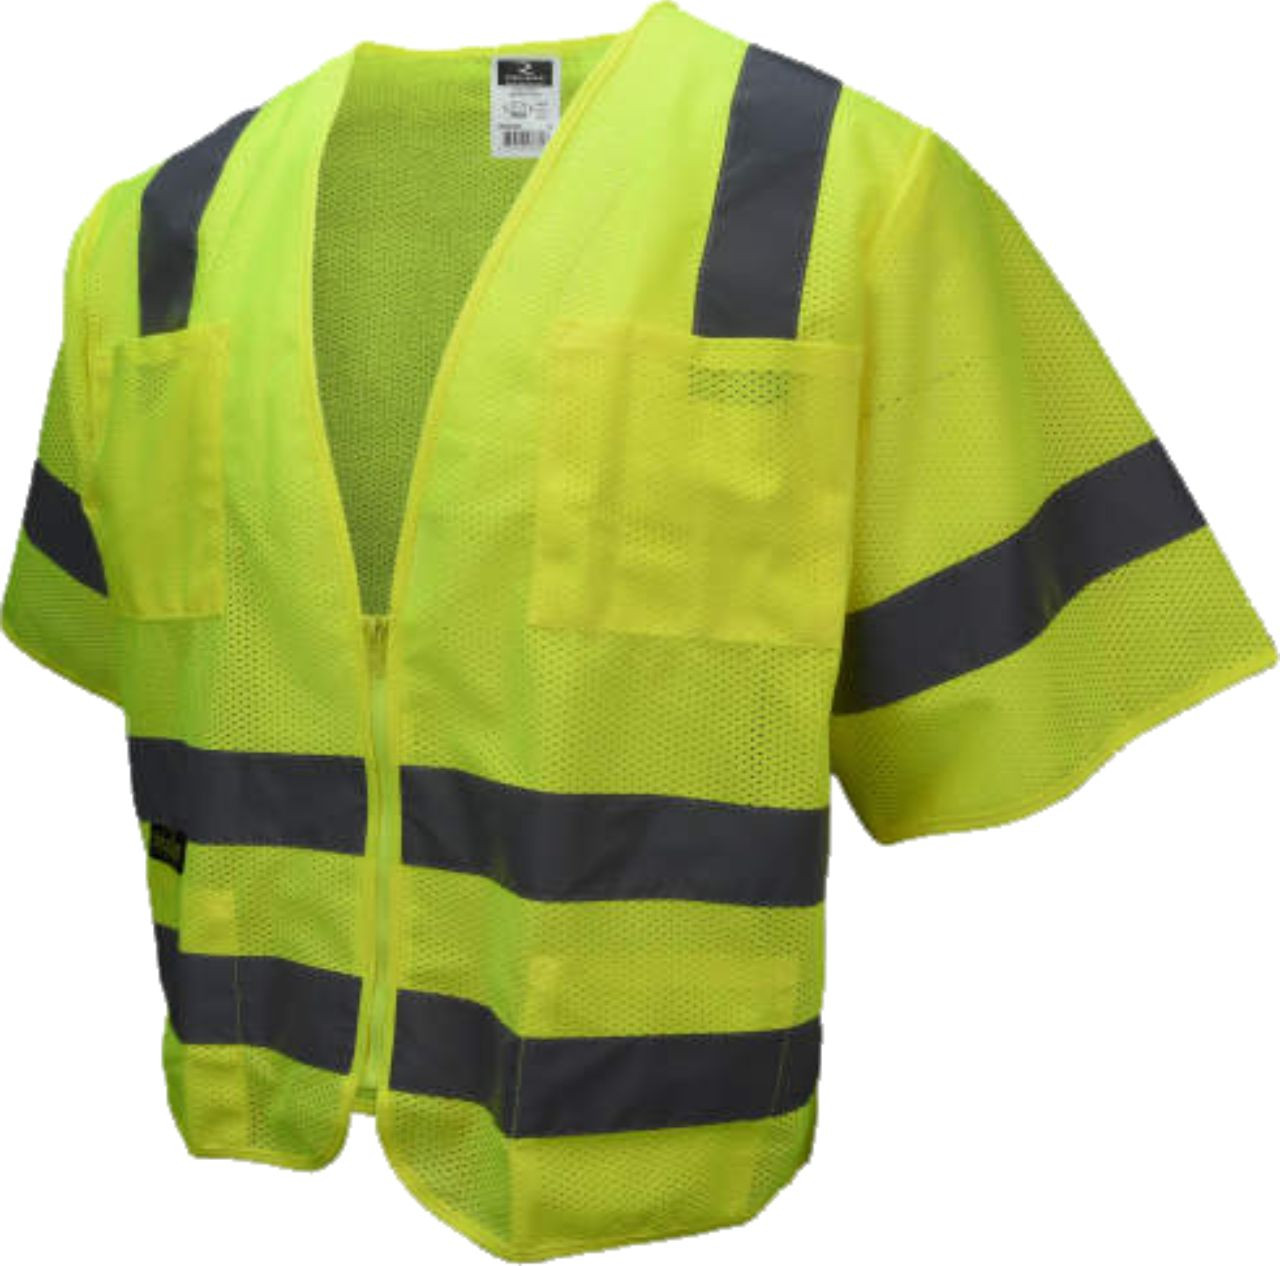 Standard Class 3 Safety Vest with Zipper Closure and 6 Pockets